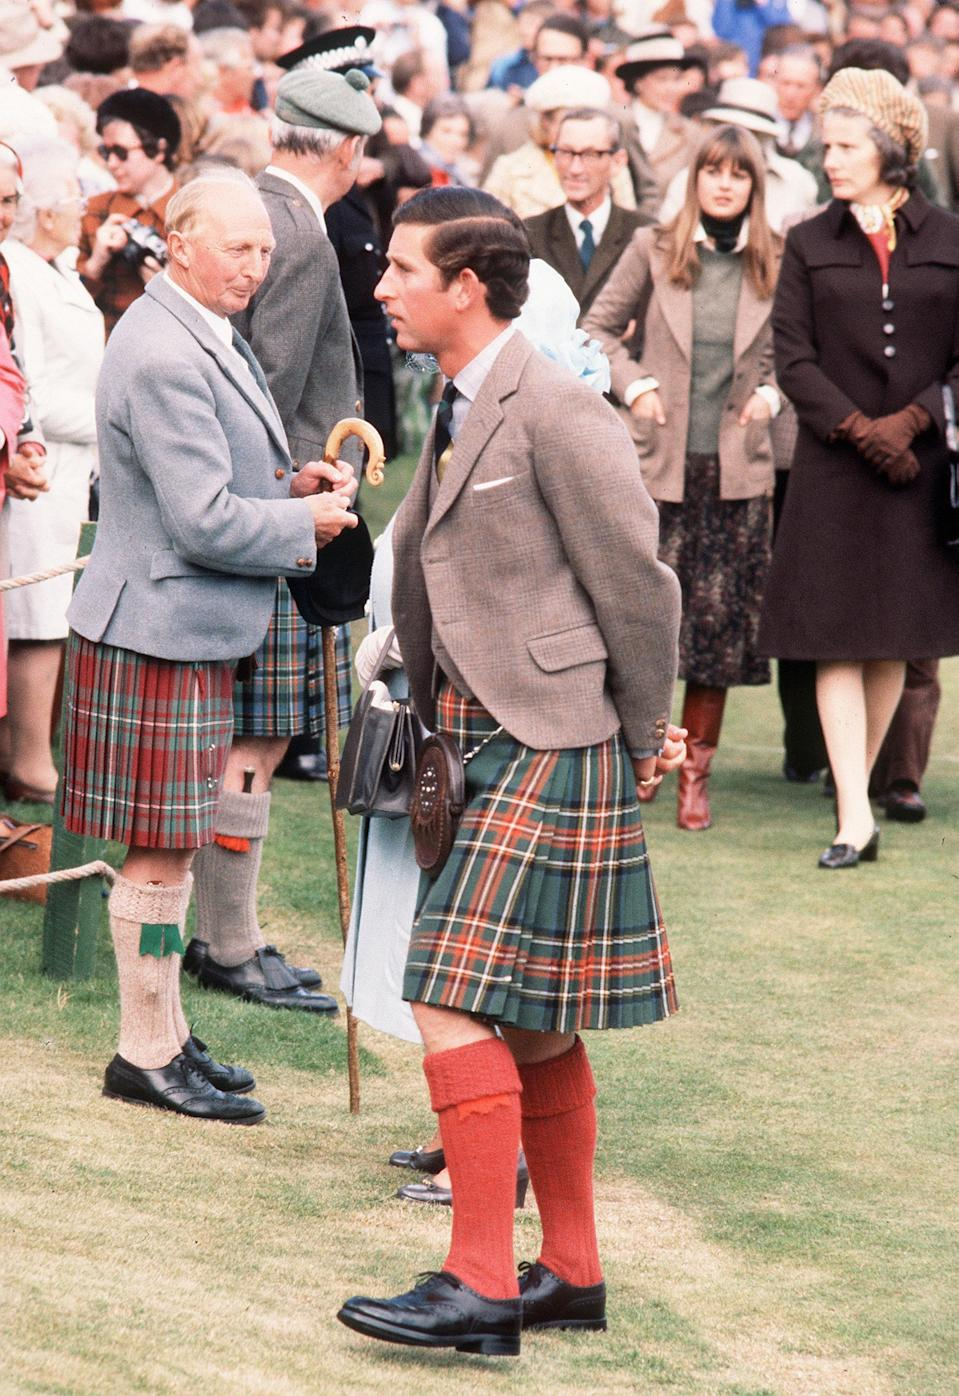 Prince Charles at the Braemar Highland Games in Scotland, September 01, 1974.